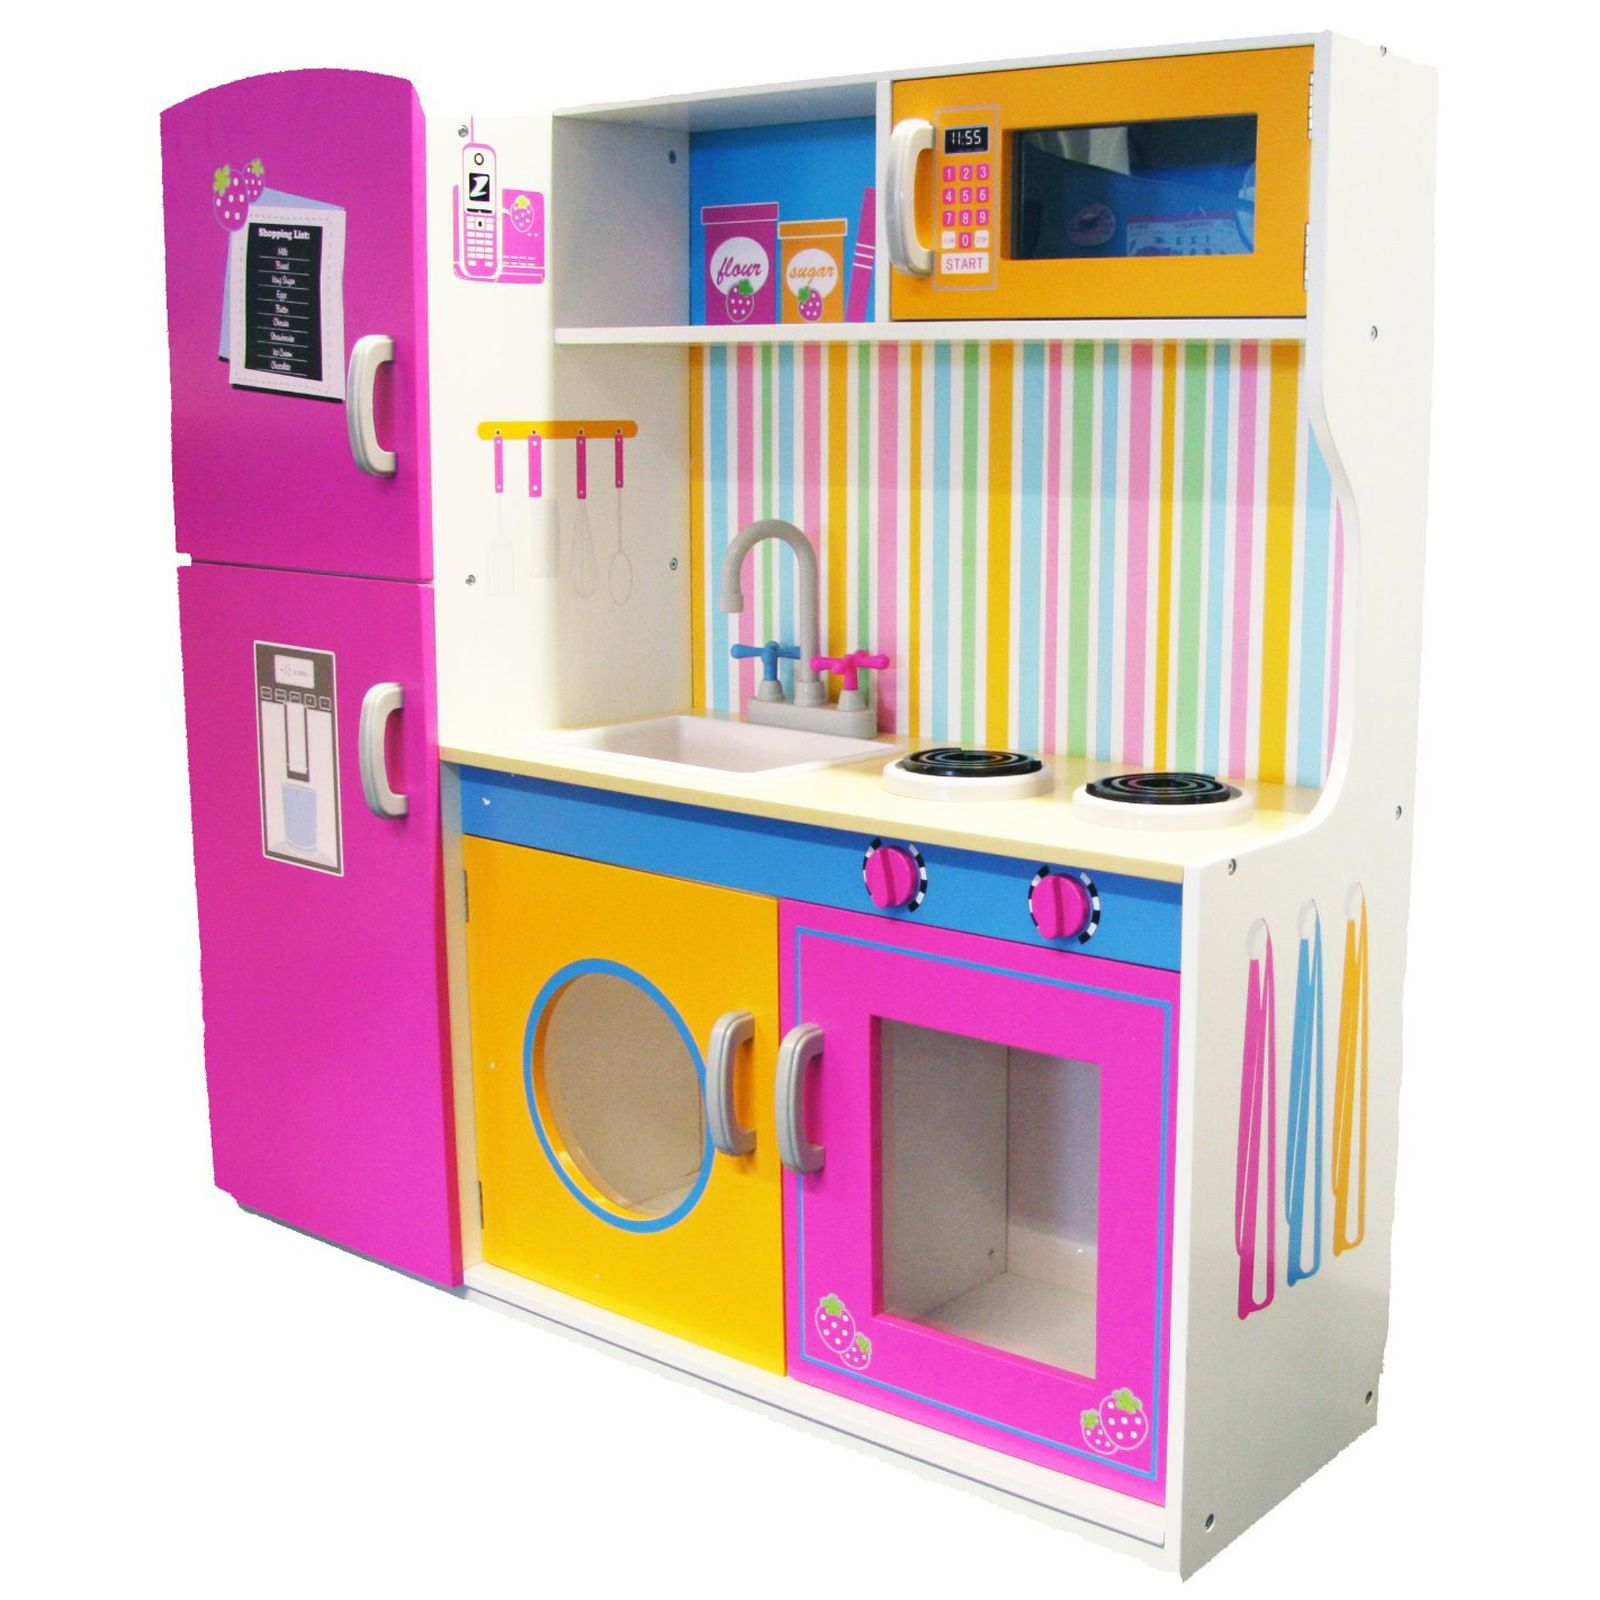 wooden kitchen accessories for children leomark wooden kitchen childrens play kitchen with 1959